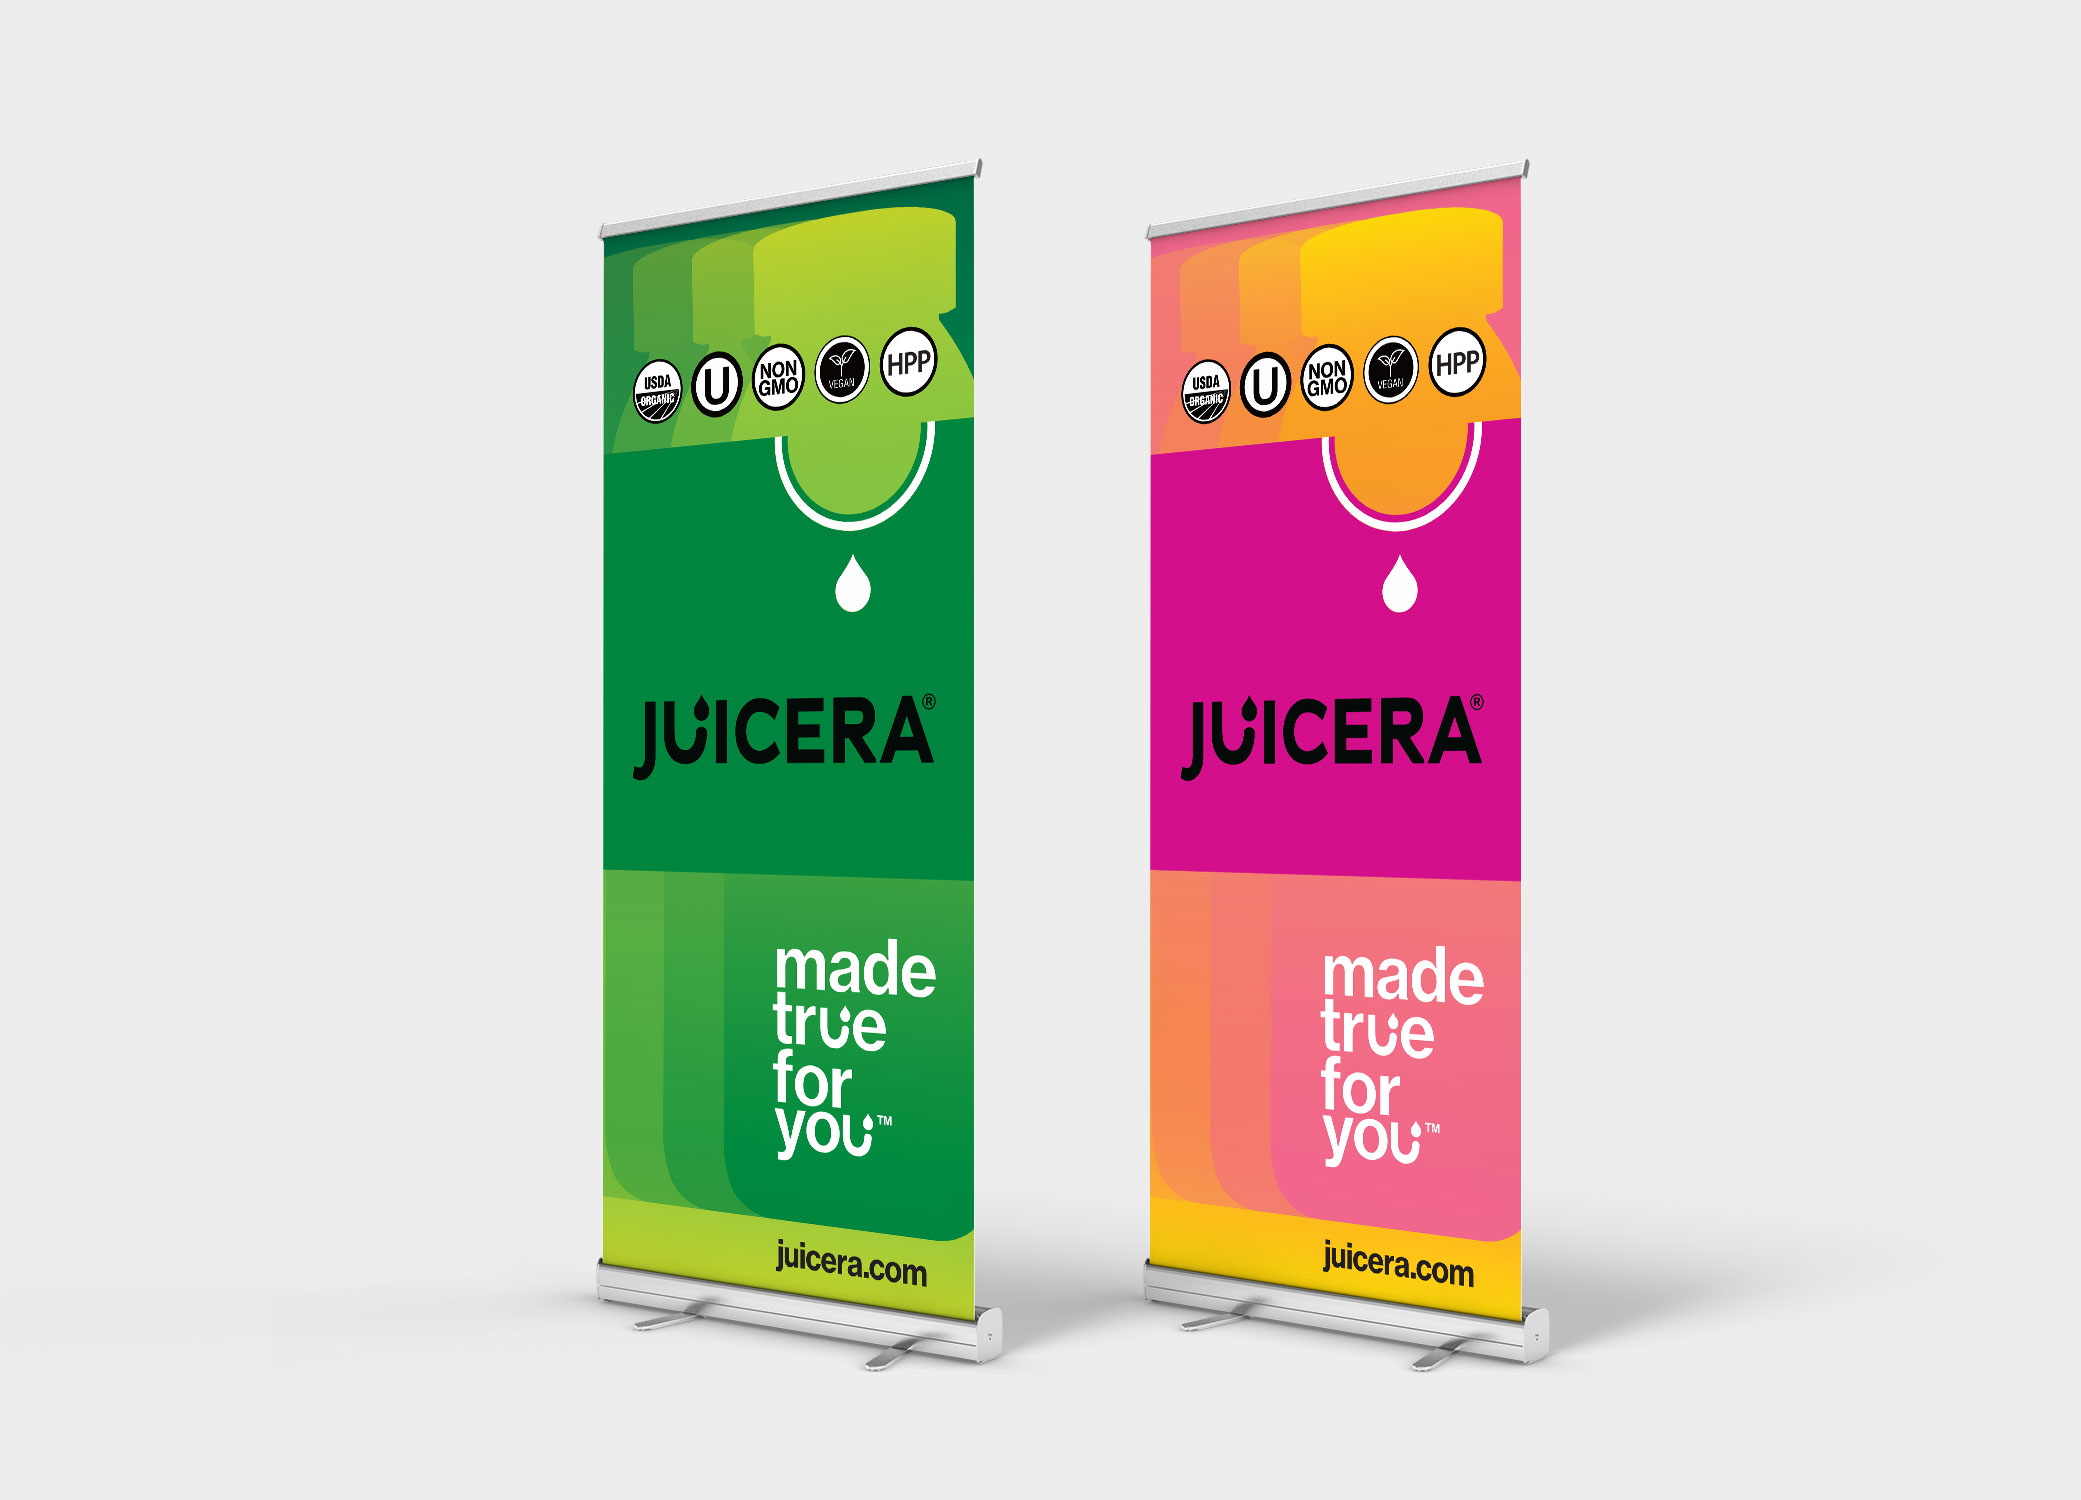 Juicera bright pink and green banners arranged next to each other against grey backdrop.